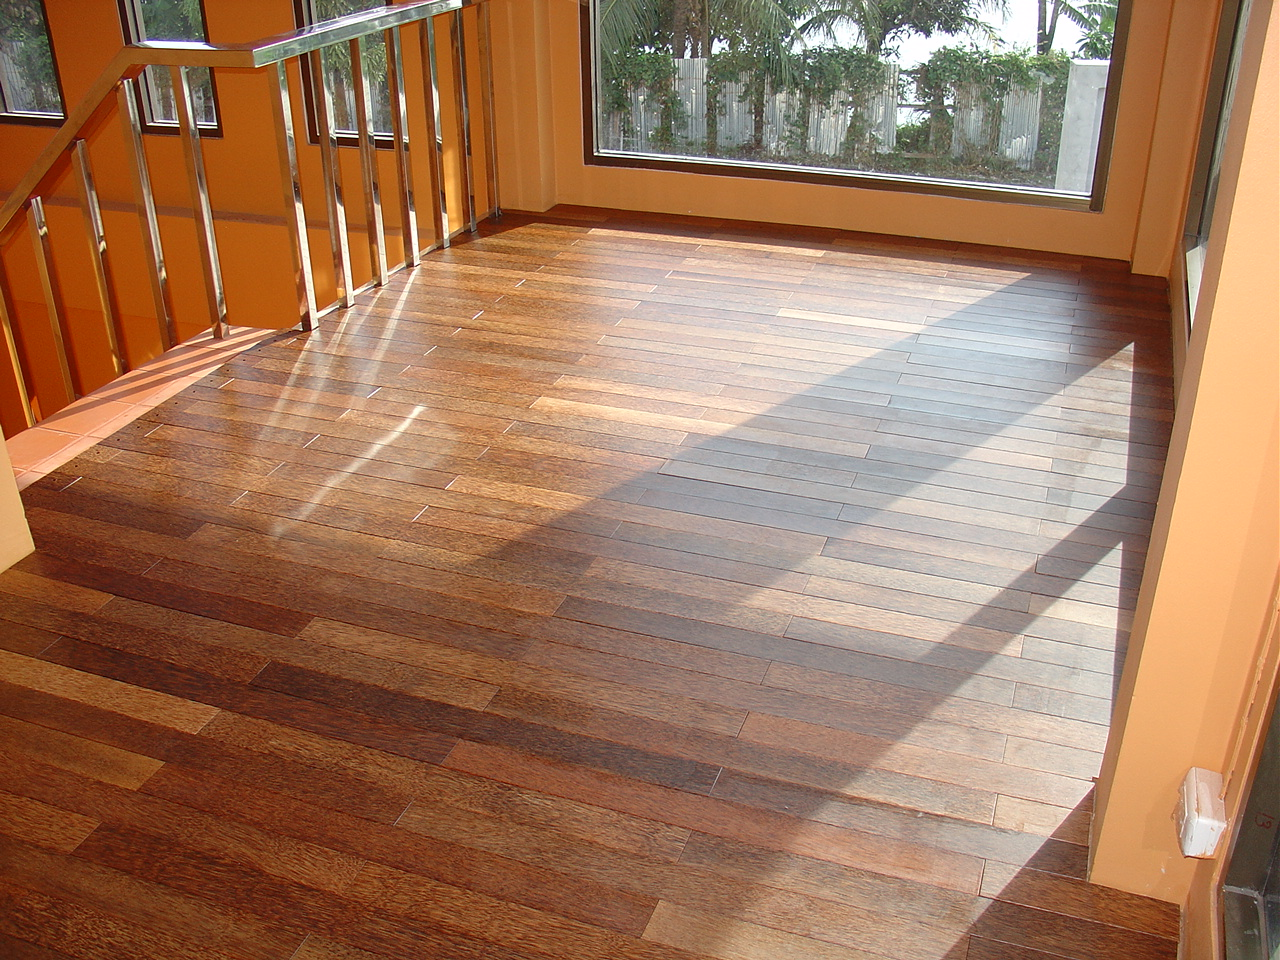 Laminate Wood Flooring Designs : Hardwood floor vs laminate the pros and cons homesfeed